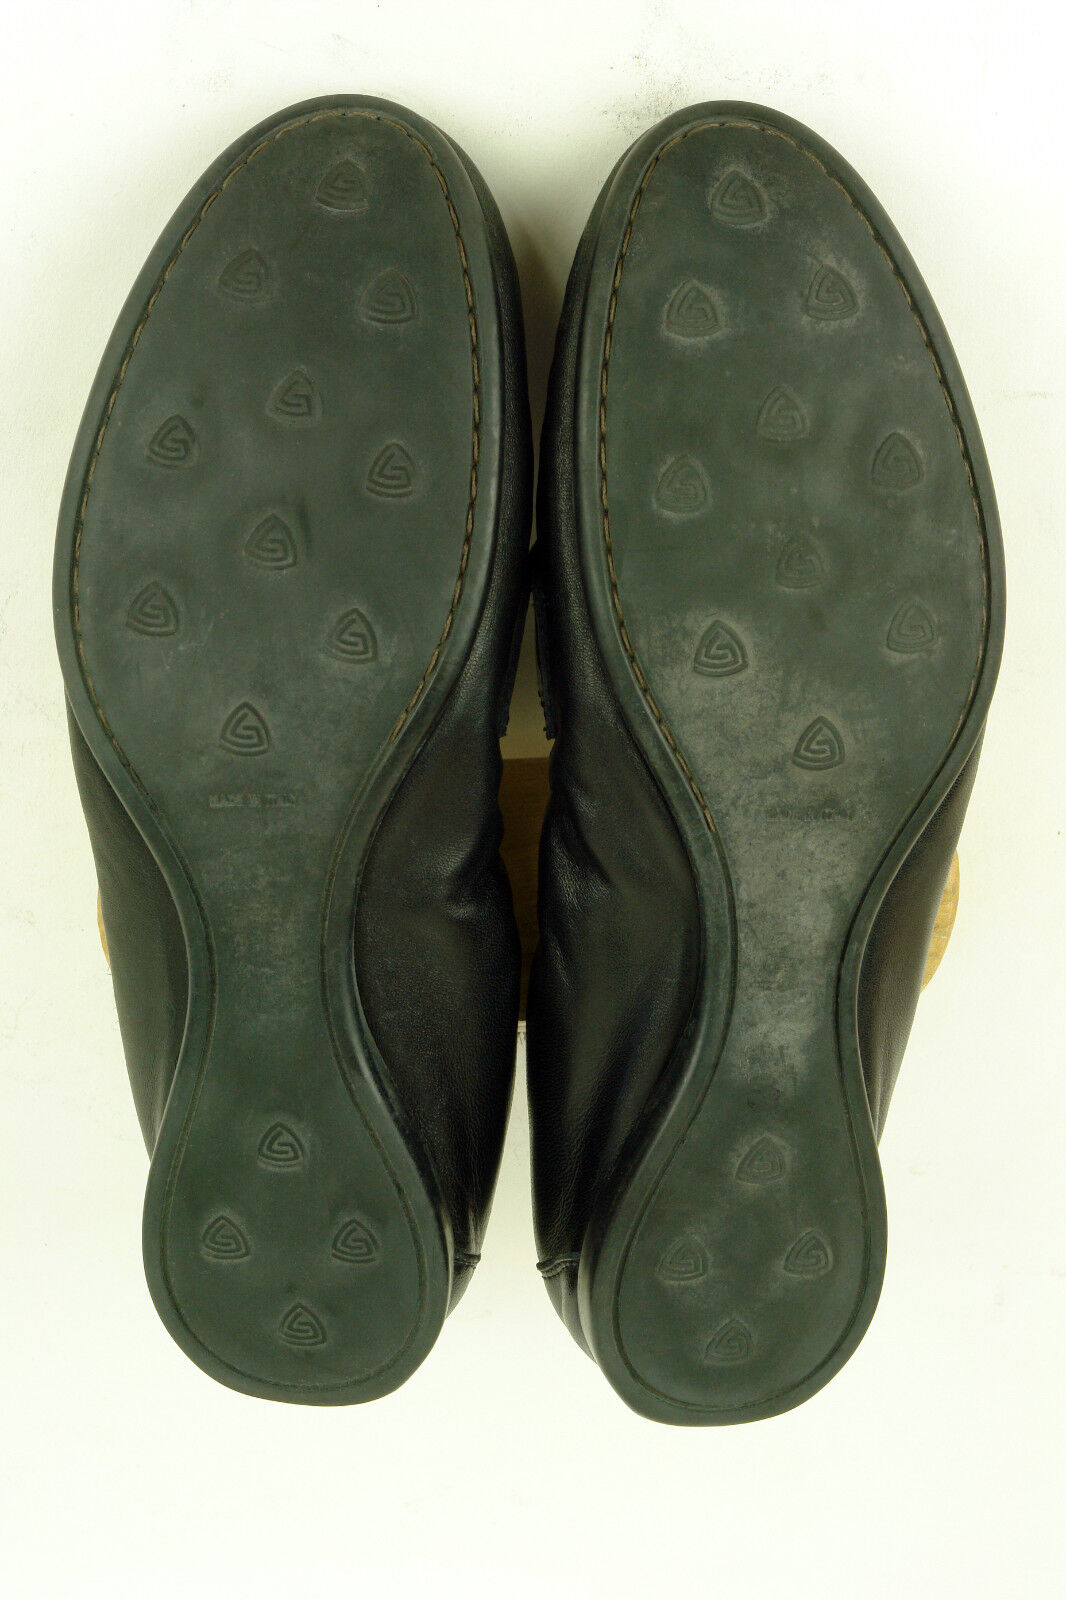 AGL / LUXURY IN LOAFER/DRIVER IN LUXURY BLACK NAPA & PATENT / 40.5 / SUPERB 14242e